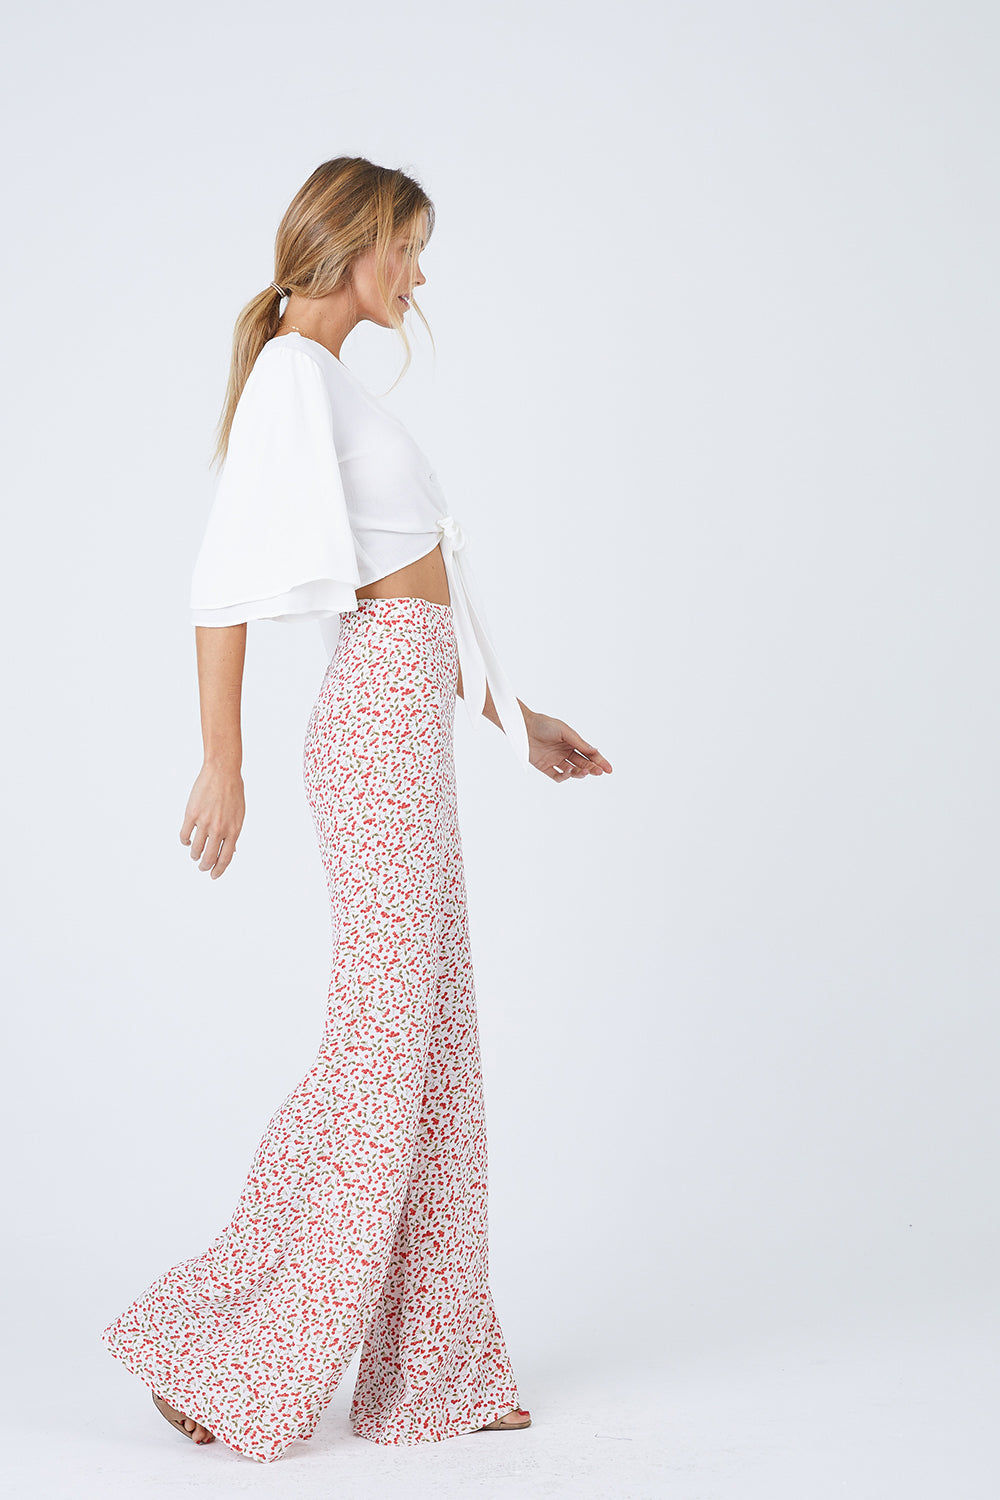 FLYNN SKYE Lilly Front Tie Top - White Top | White| Flynn Skye Lilly Front Tie Top - White  Relaxed fit white crop top with button and tie front closure. 3/4 length kimono sleeves  Extra long adjustable knot tie closure Front View